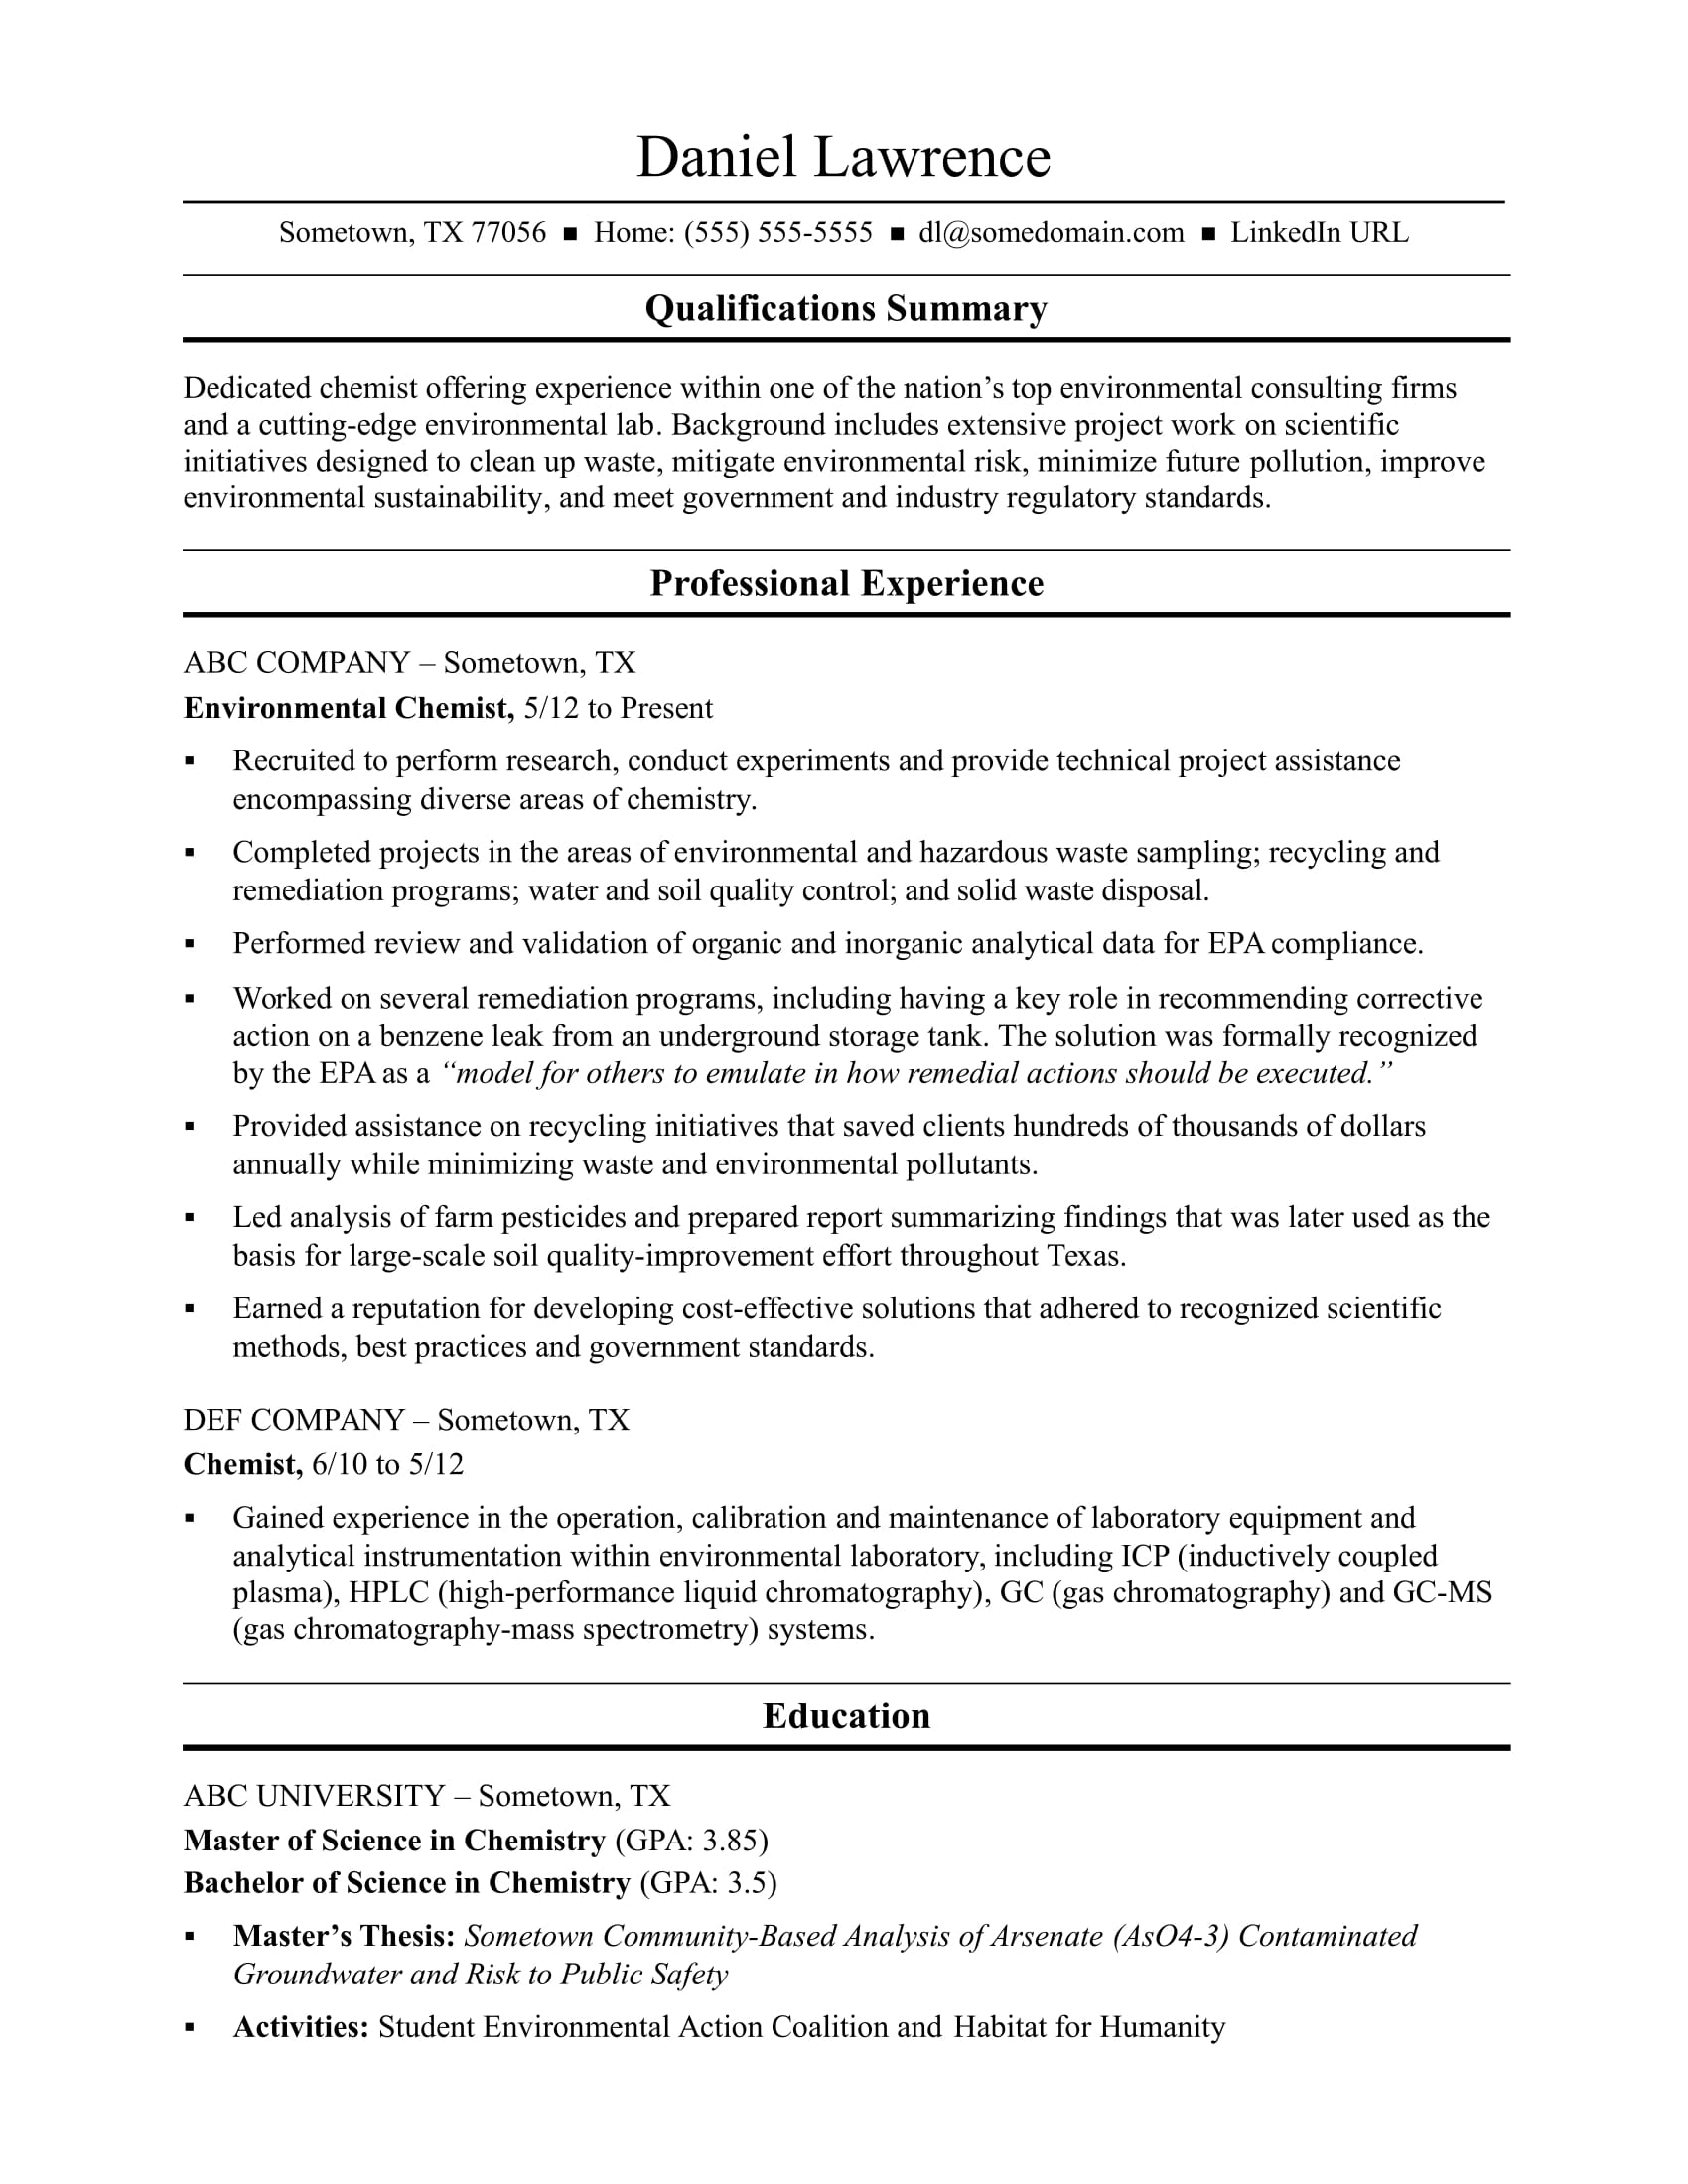 midlevel chemist resume sample monstercom